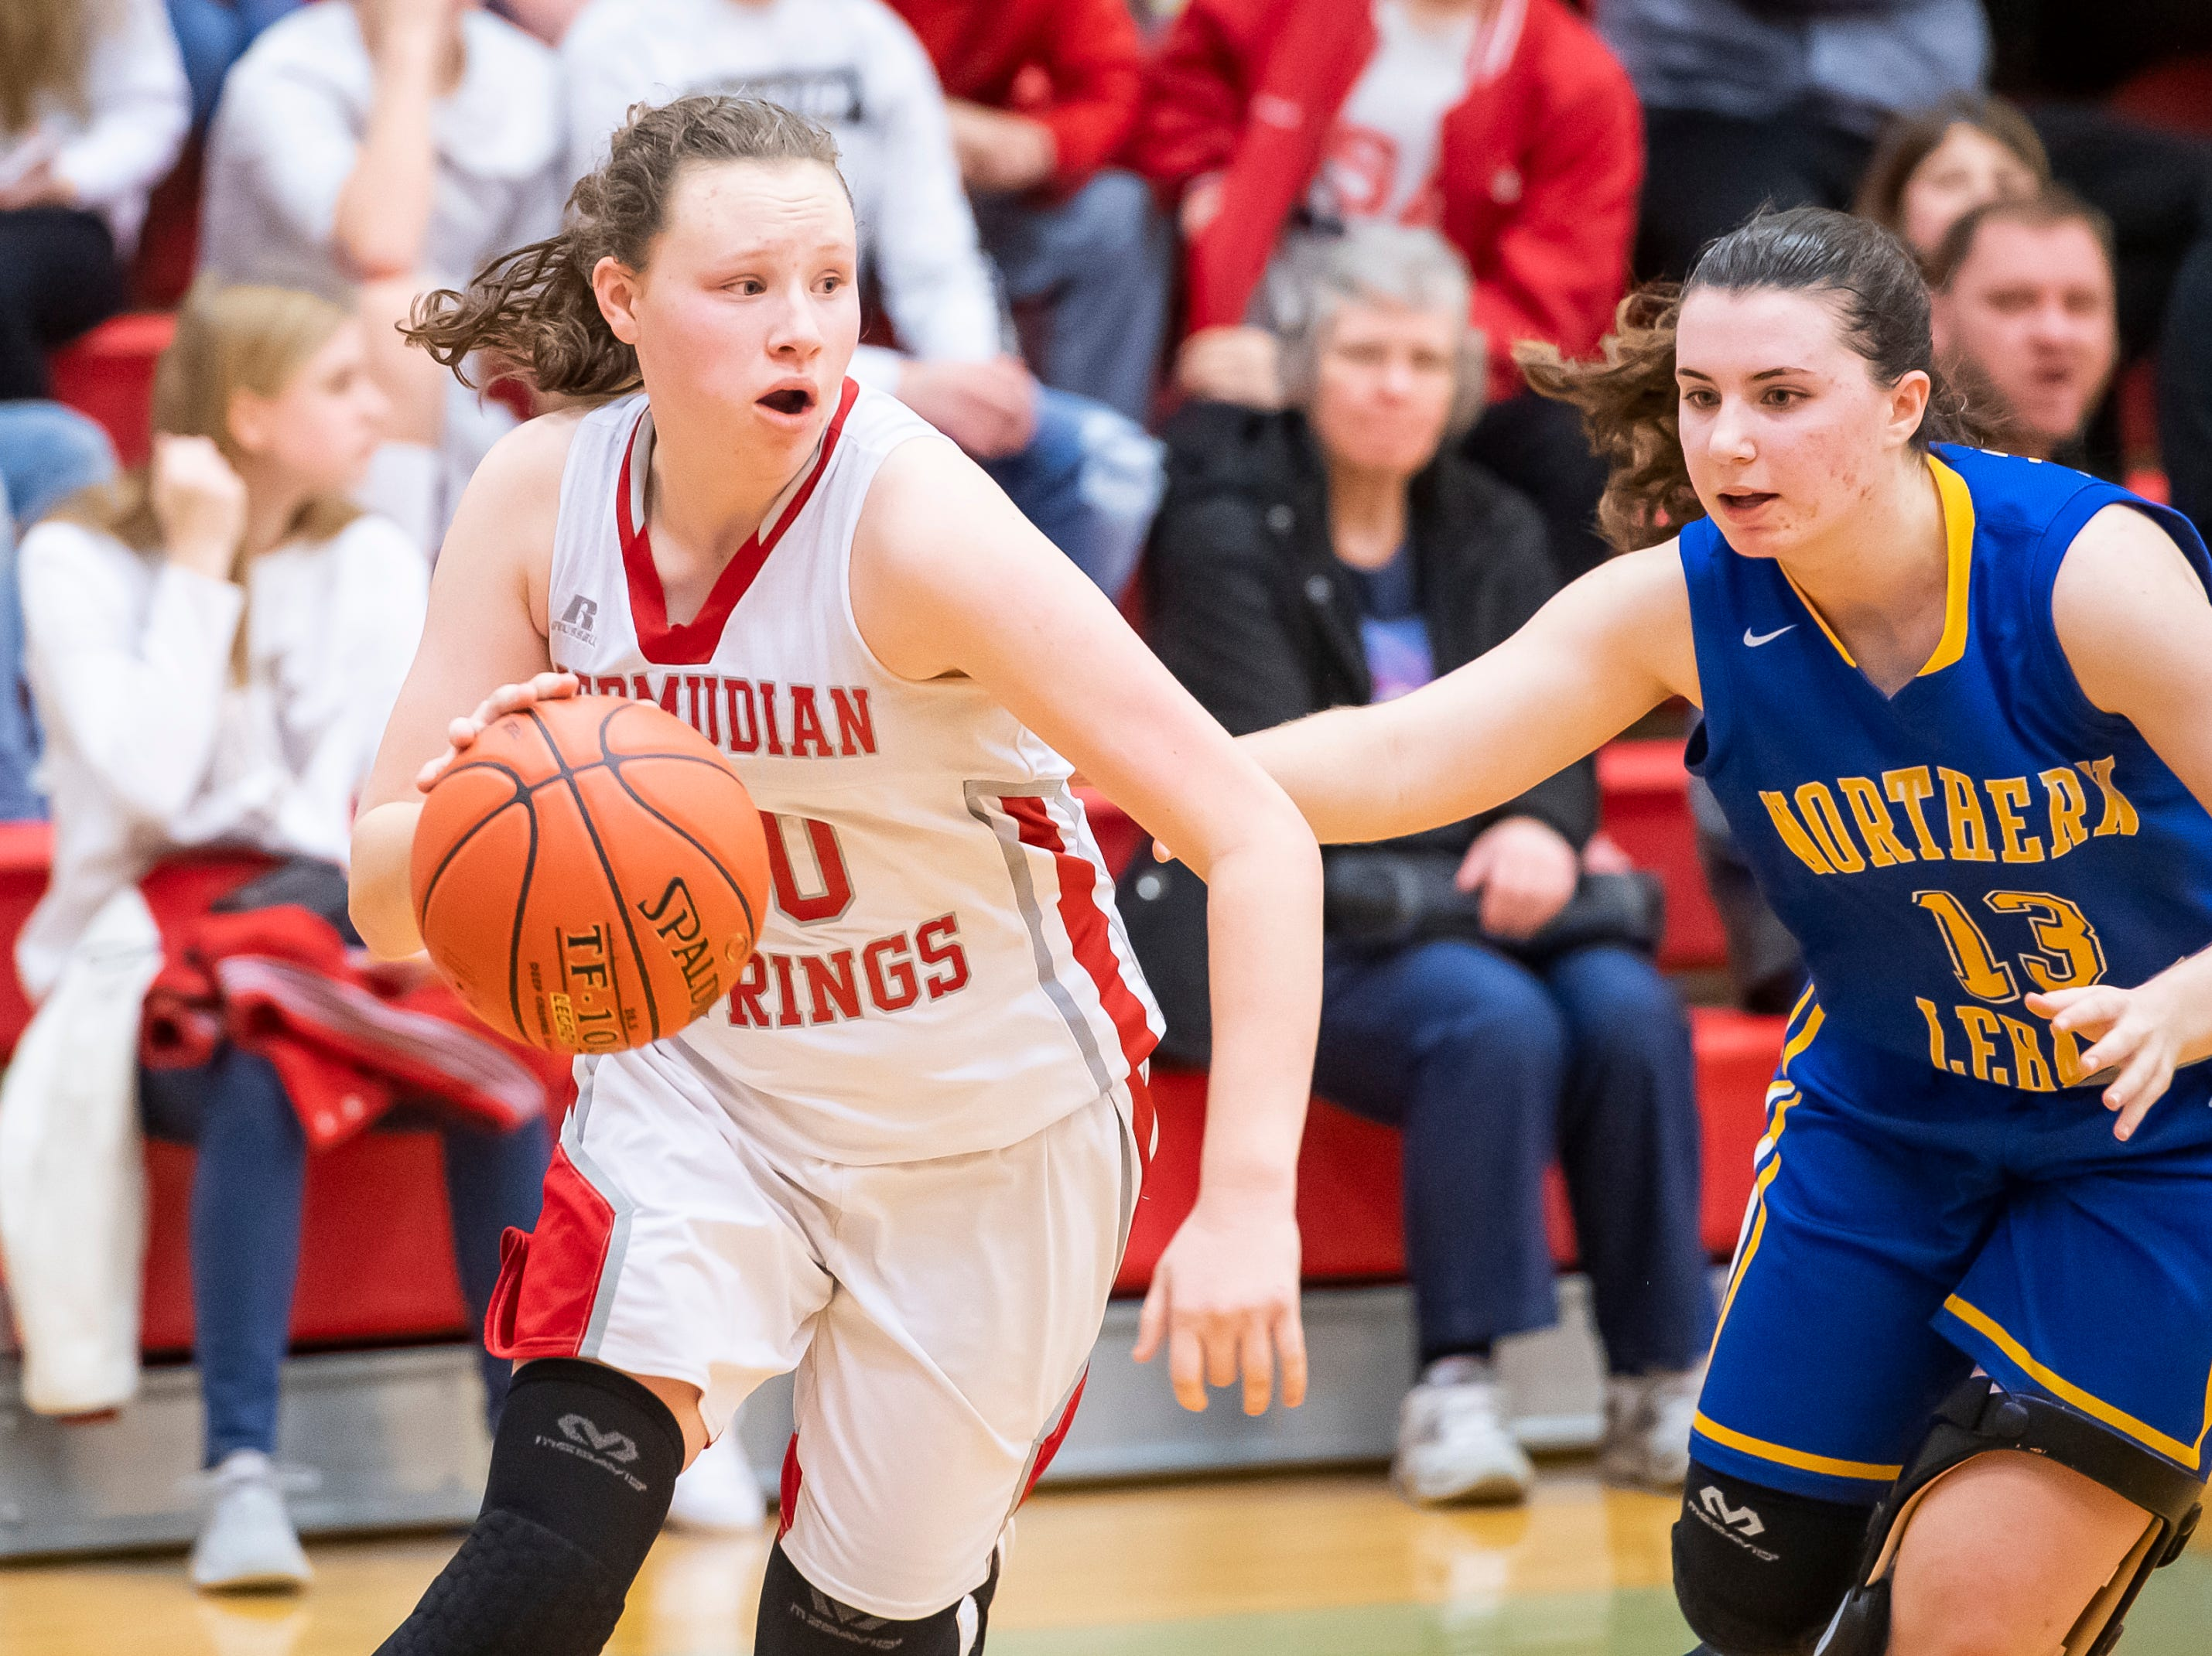 Bermudian Springs' Hannah Chenault drives into the paint during play against Northern Lebanon in the first round of the District III 4-A playoffs Tuesday, February 19, 2019. The Eagles won 58-52.